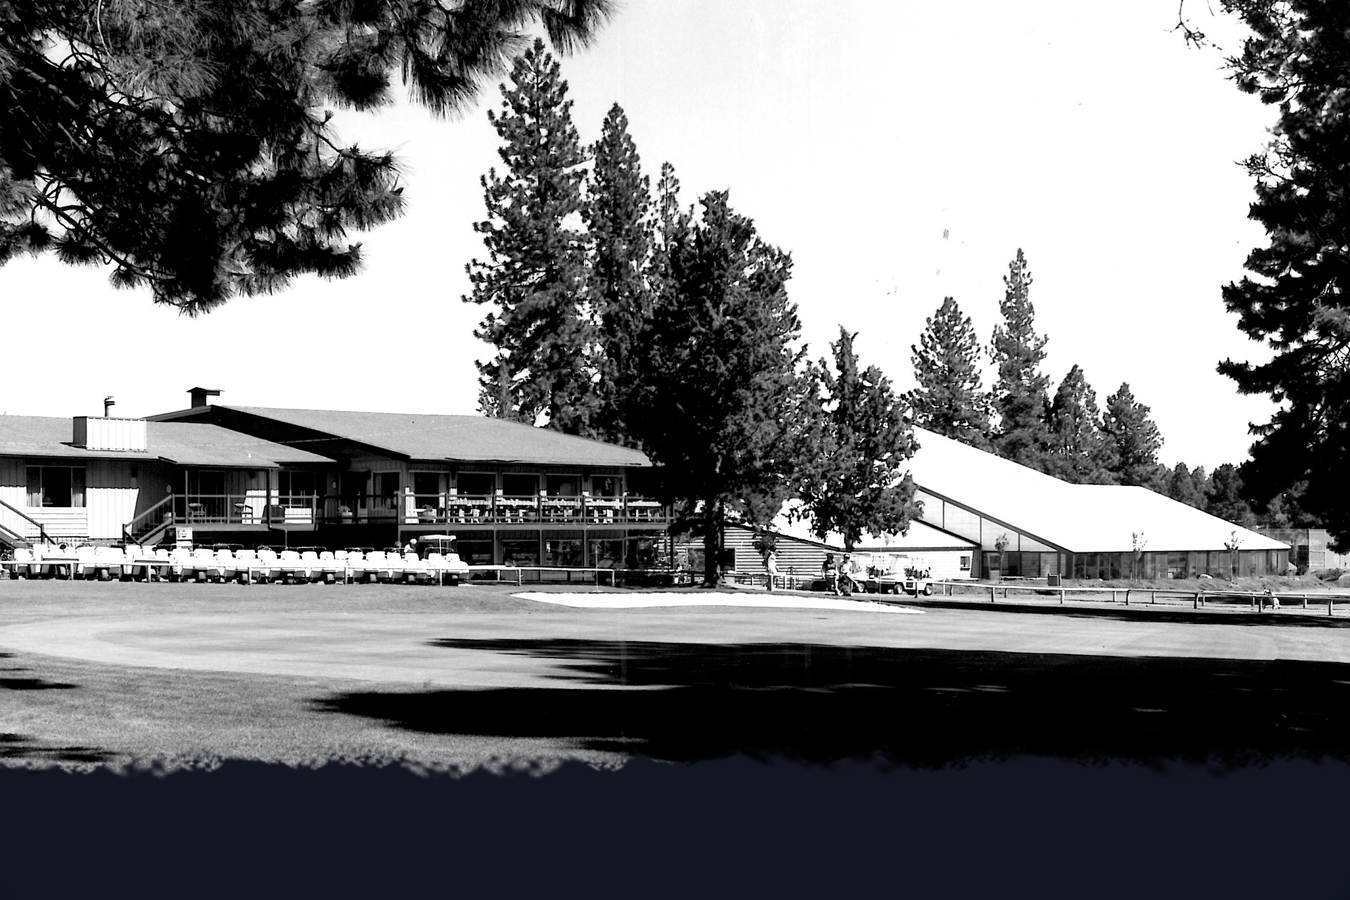 This photo circa 1974 shows the brand new indoor Swim/Tennis Center to the right of the Clubhouse.